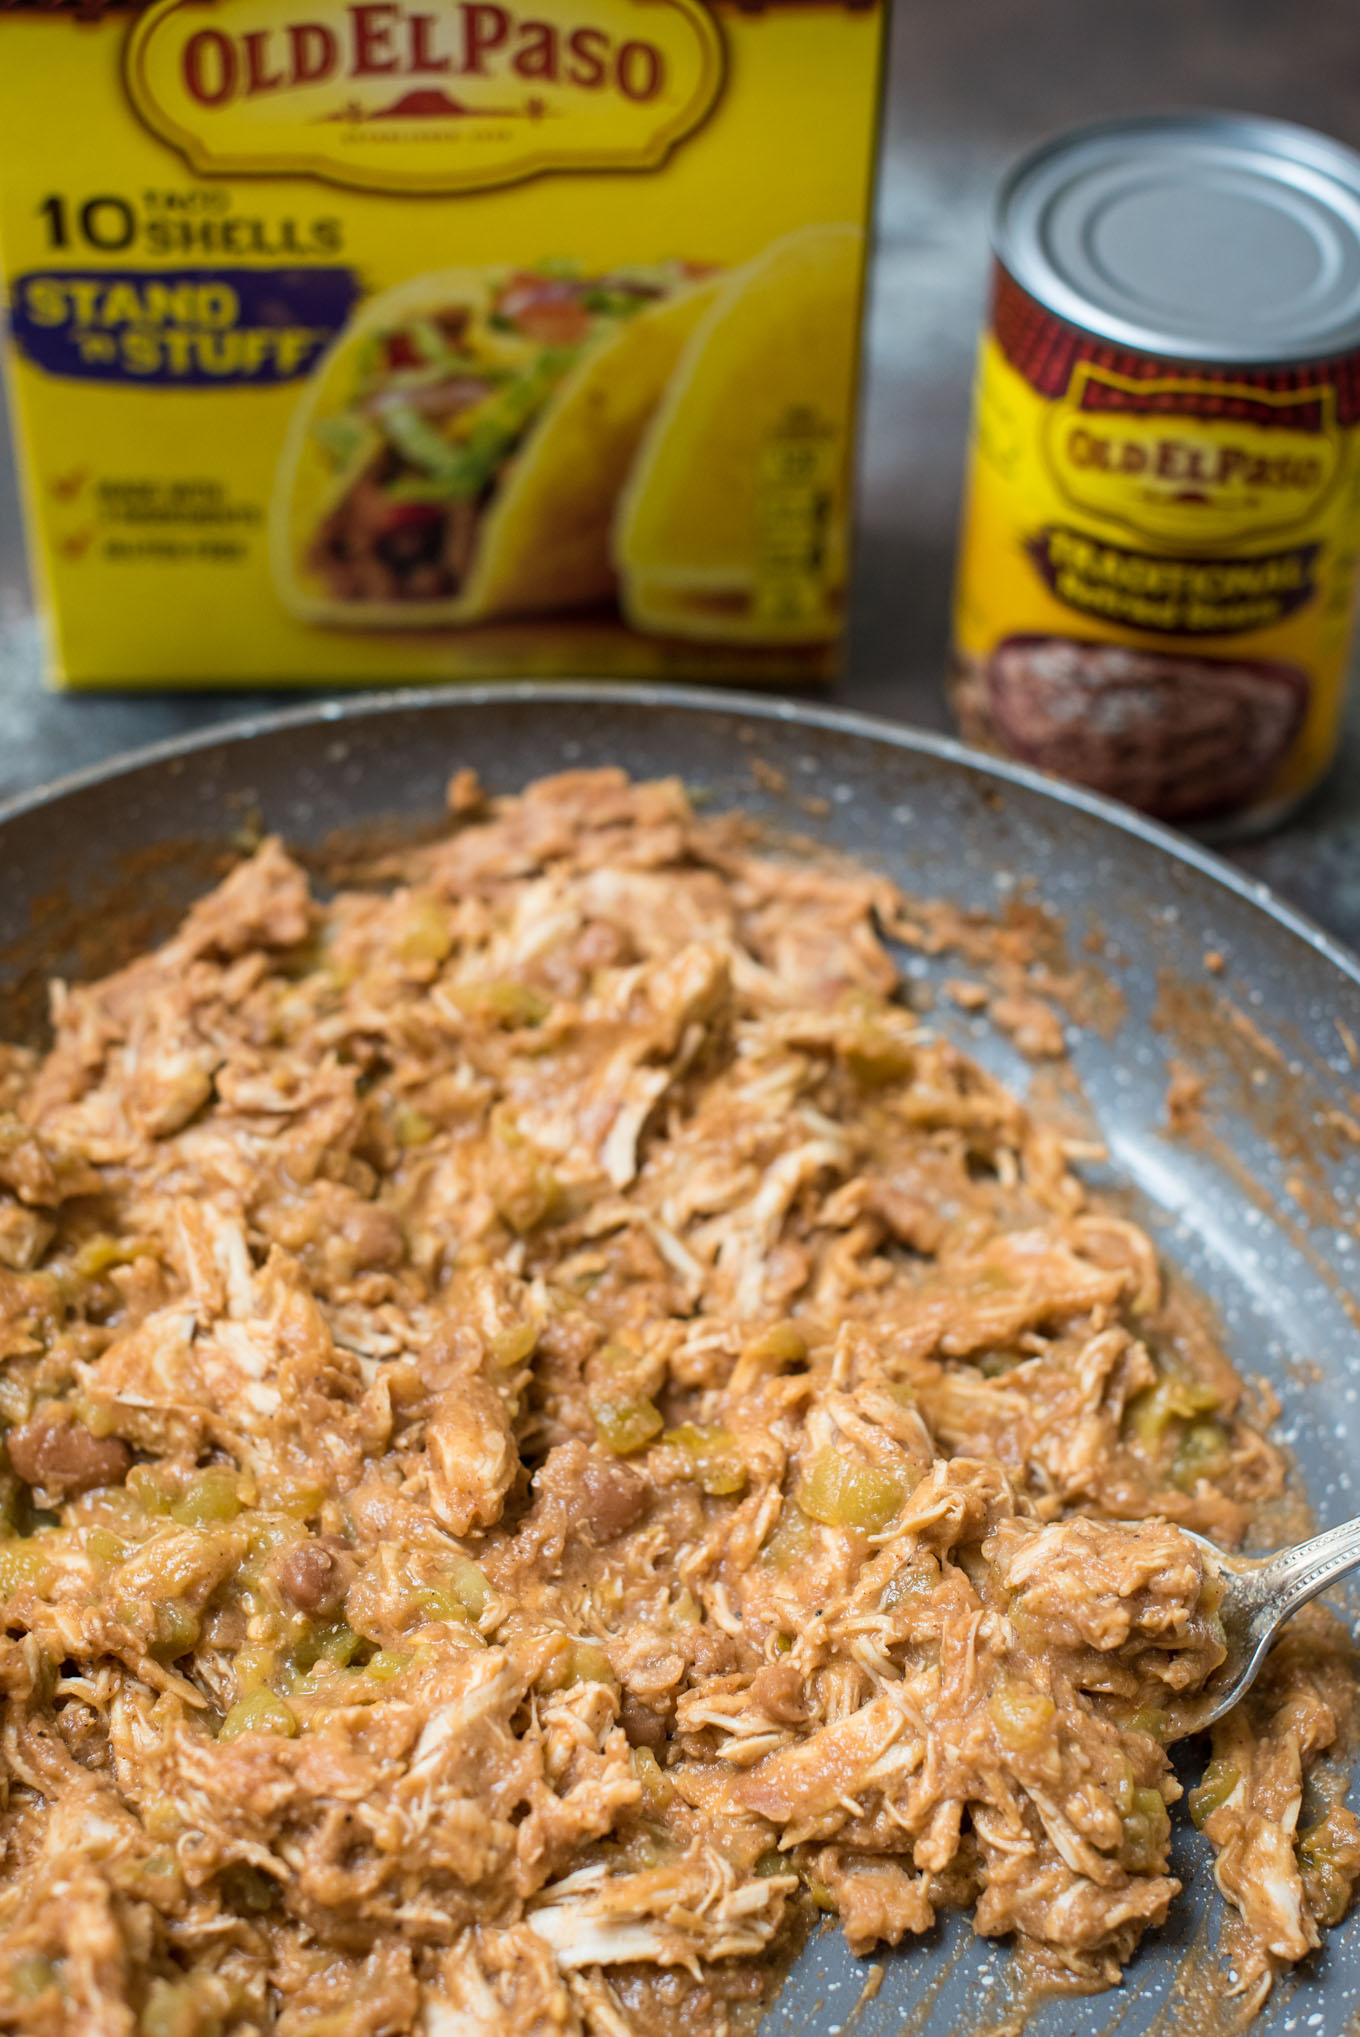 Skillet of shredded chicken and beans